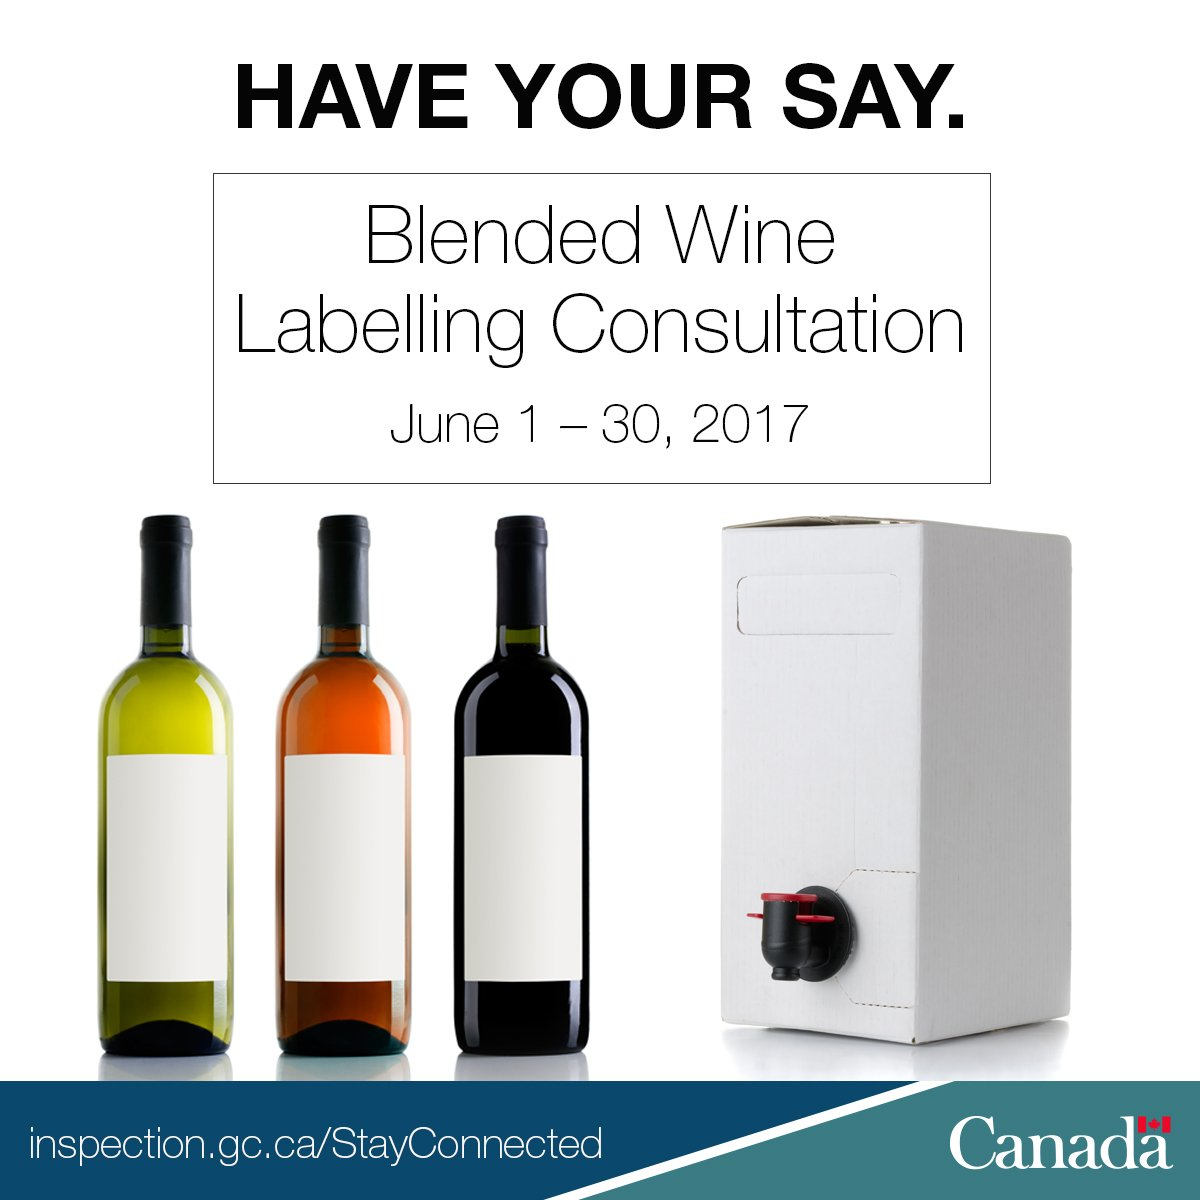 Hey Canada. Take 2 minutes to let us know what you think about the labelling of #wine blended in Canada. https://t.co/mLyhEftk1c  #TellCFIA